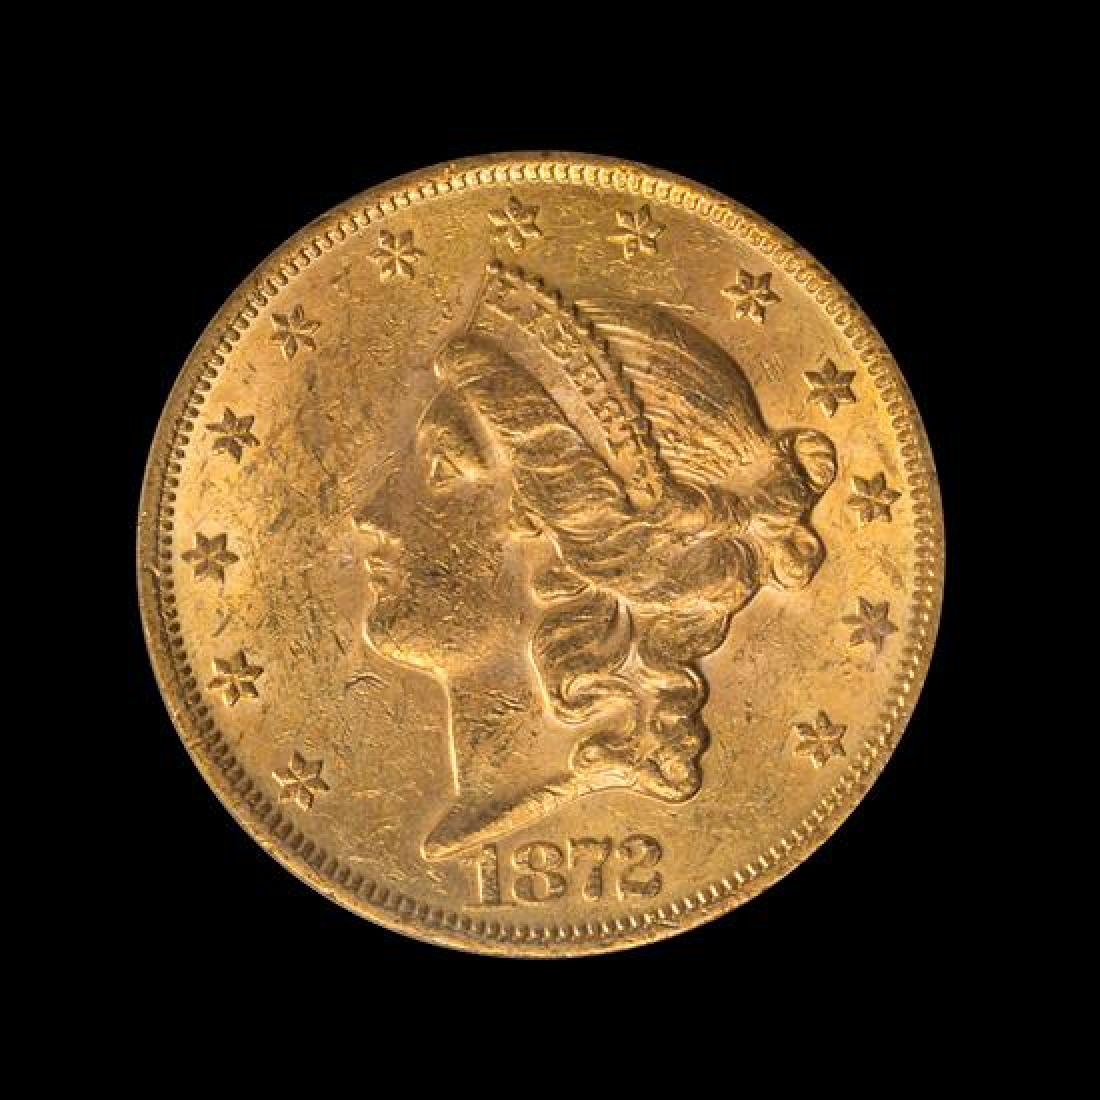 A United States 1872 Liberty Head $20 Gold Coin